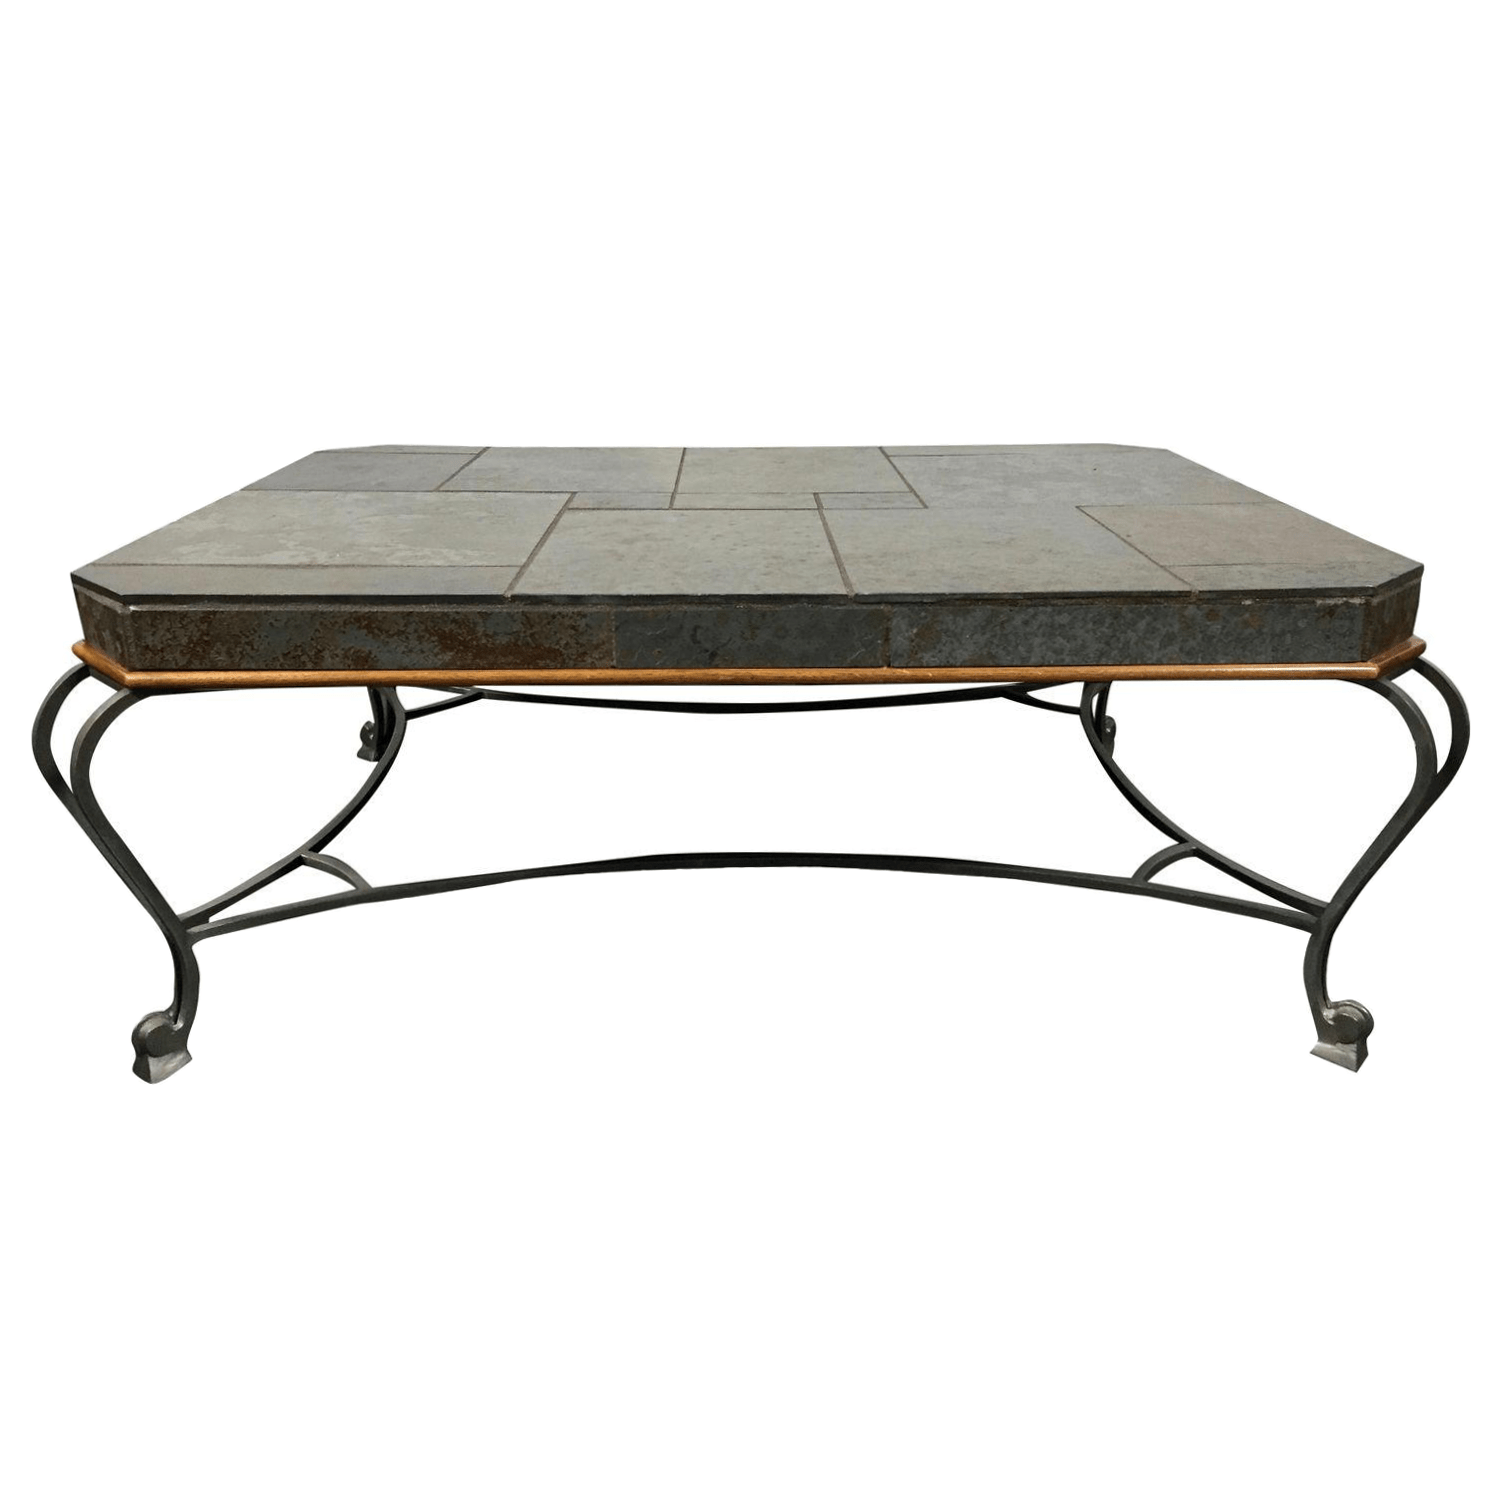 drexel sofa table polyester stain heritage et cetera slate metal coffee chairish